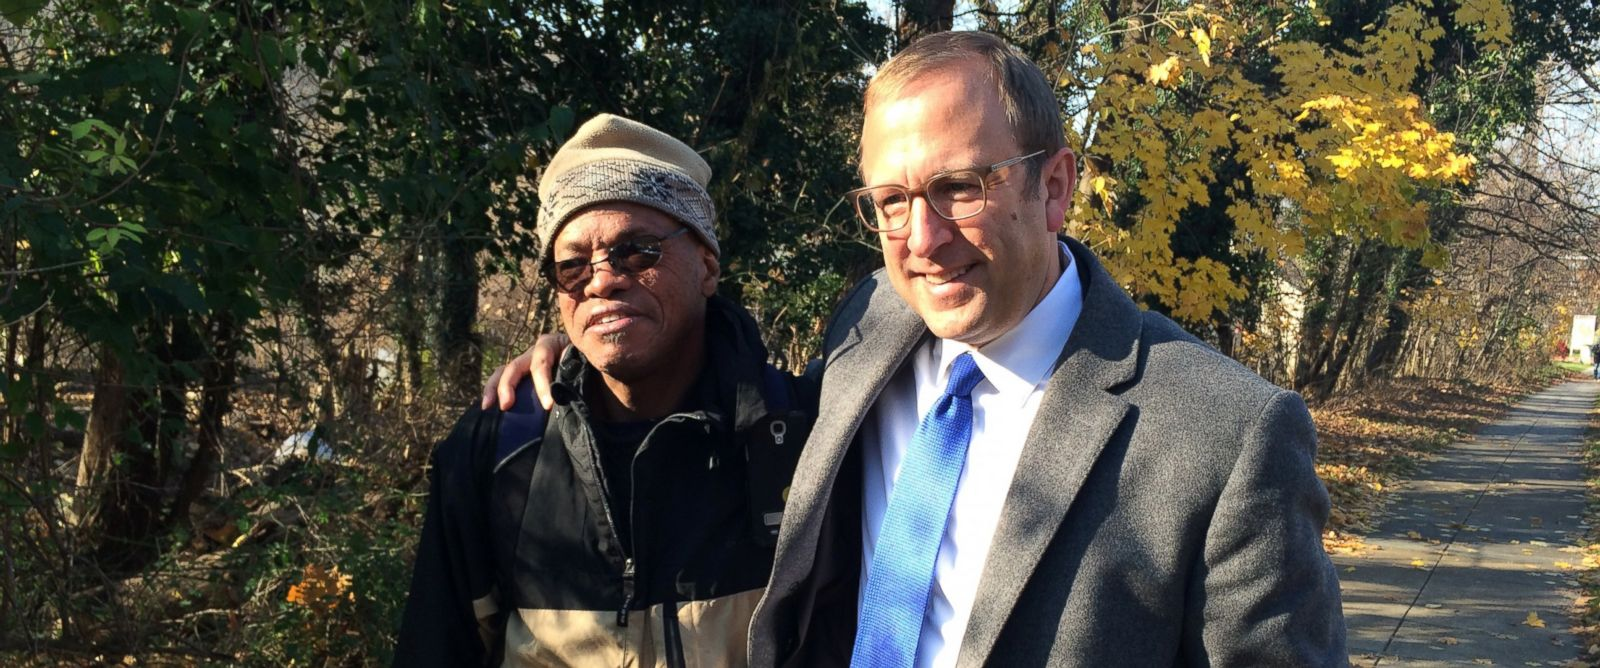 PHOTO: Jon Karl interviews veteran Tony Jones on the day he moved from a tent in the woods into an apartment.